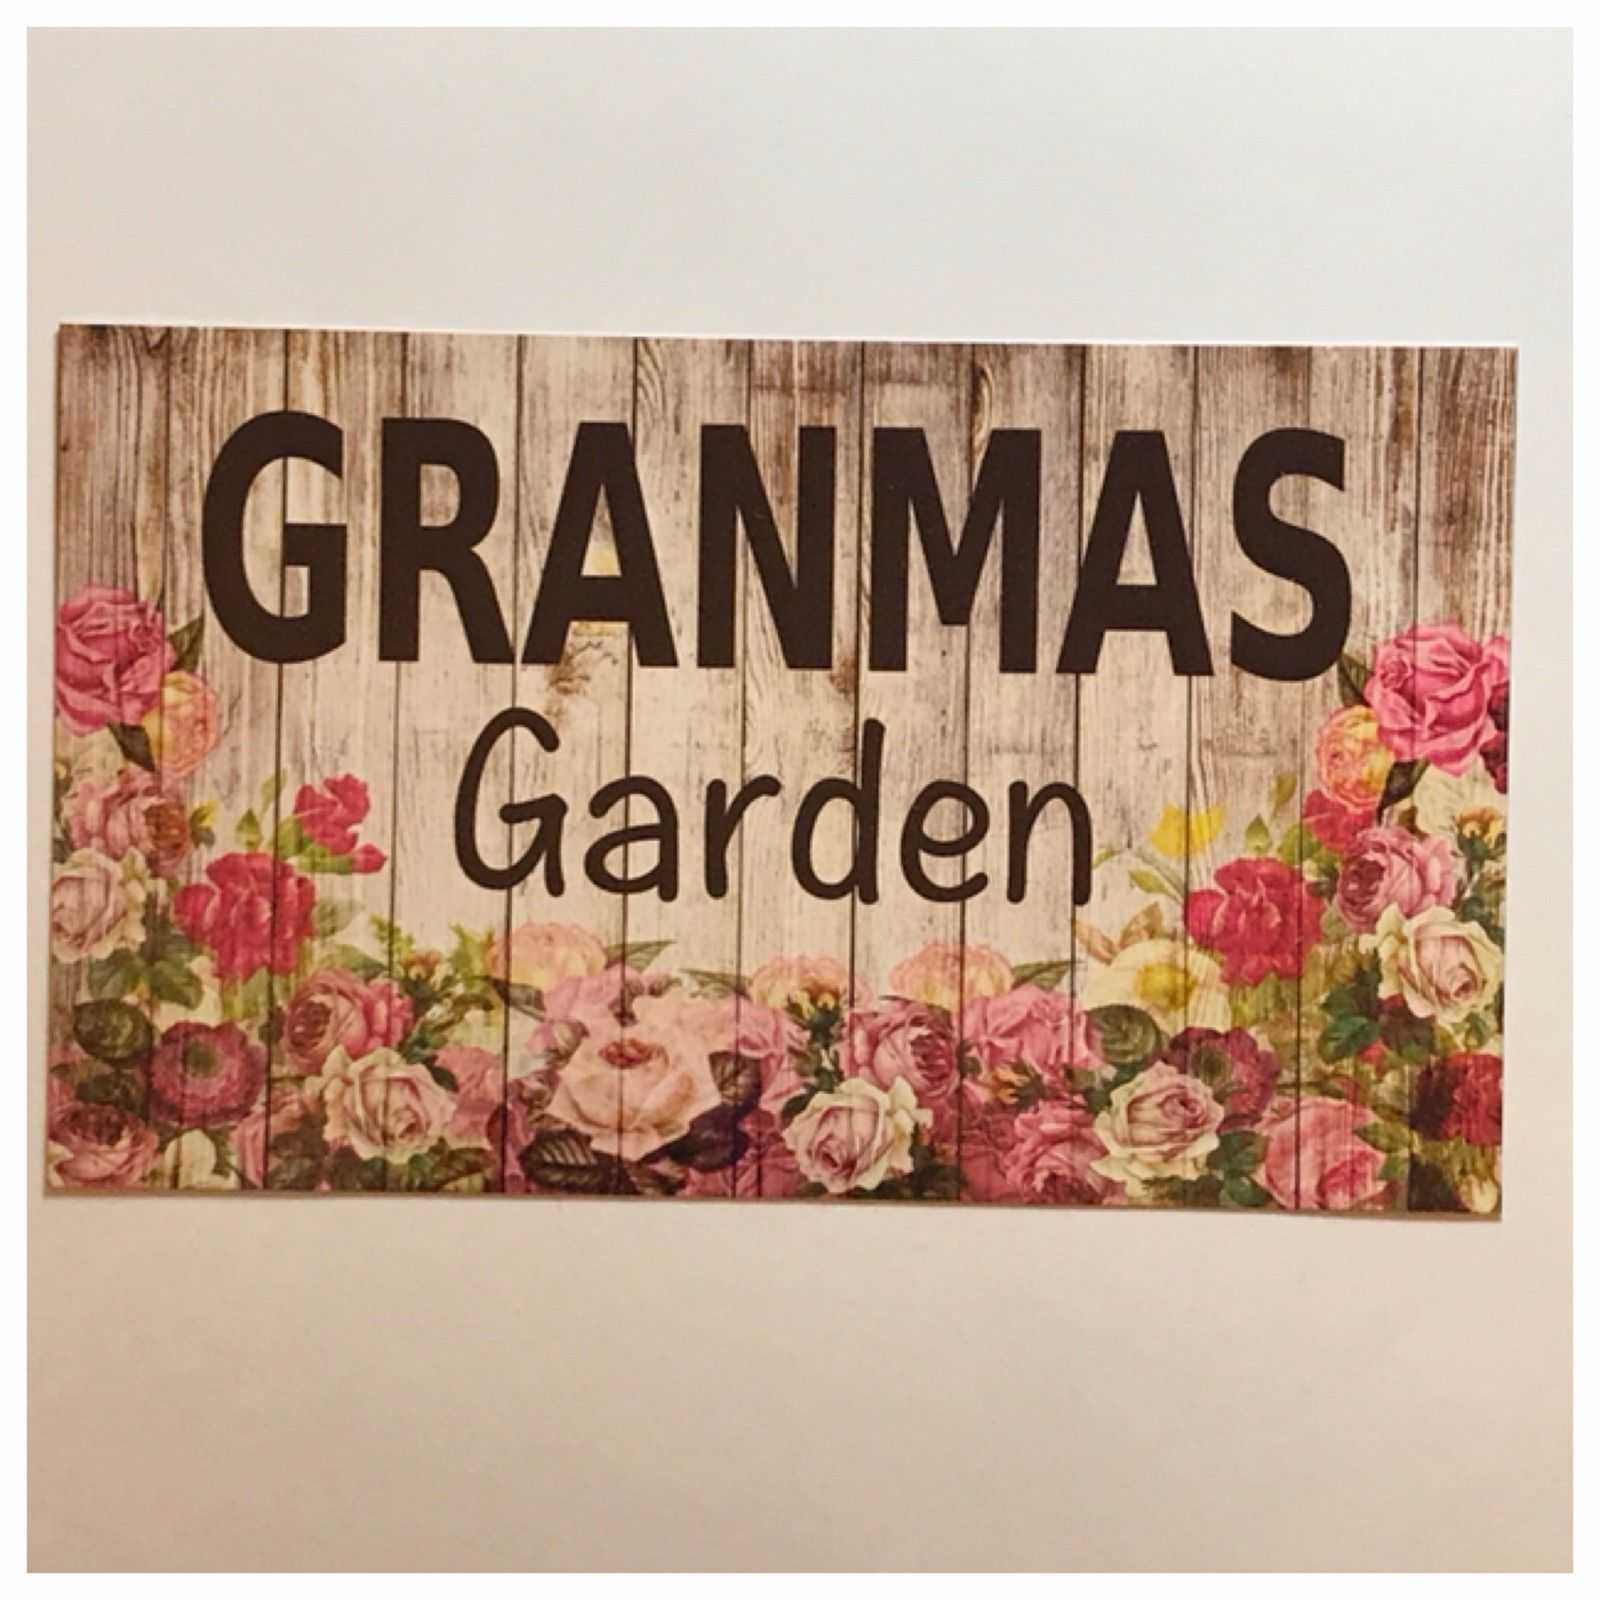 Granmas Garden Sign Floral Plaques & Signs The Renmy Store